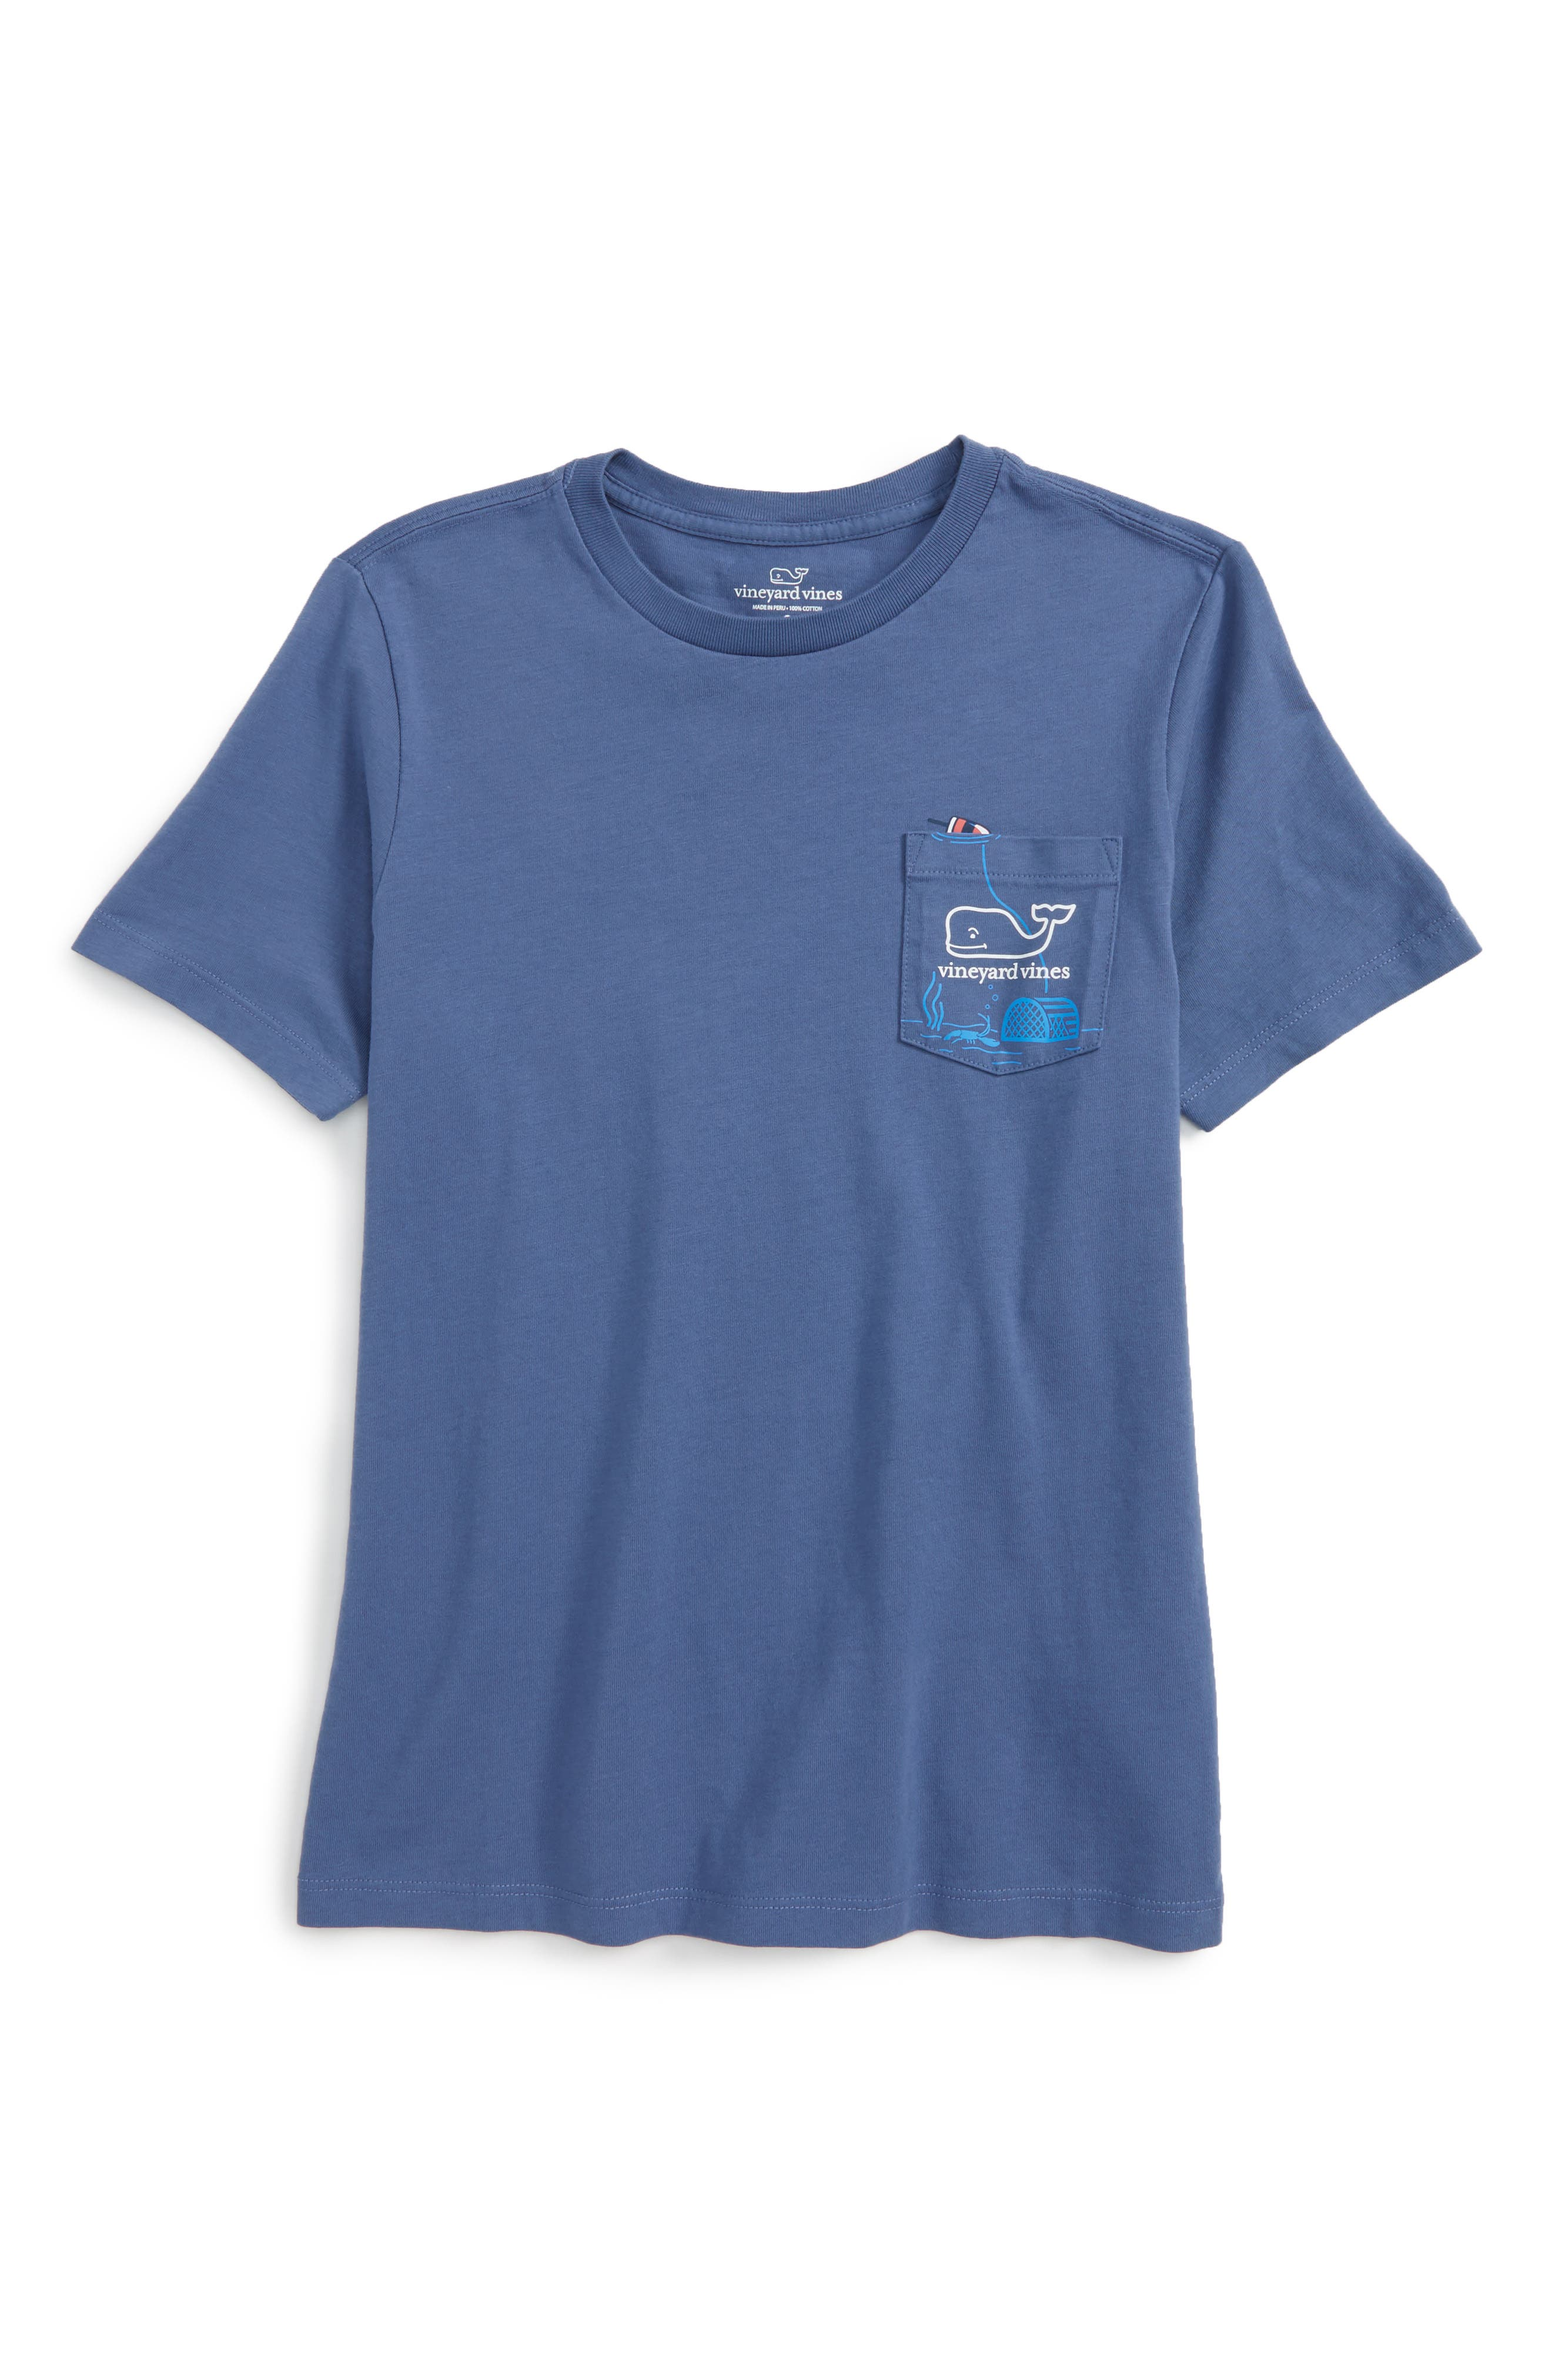 Alternate Image 1 Selected - vineyard vines Lobster Trap Cotton T-Shirt (Big Boys)